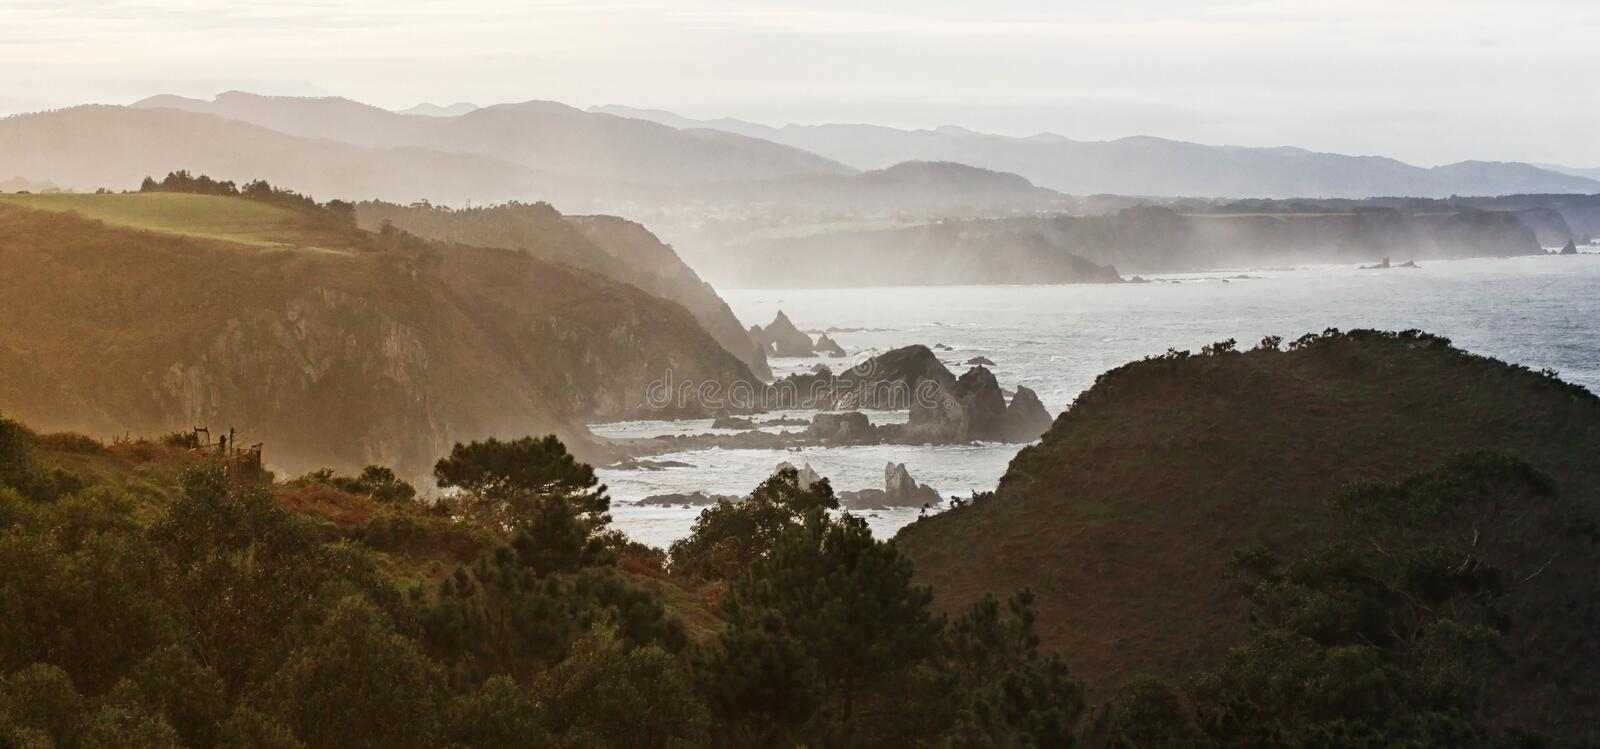 Offshore rocks and coastline in foggy evening royalty free stock photos